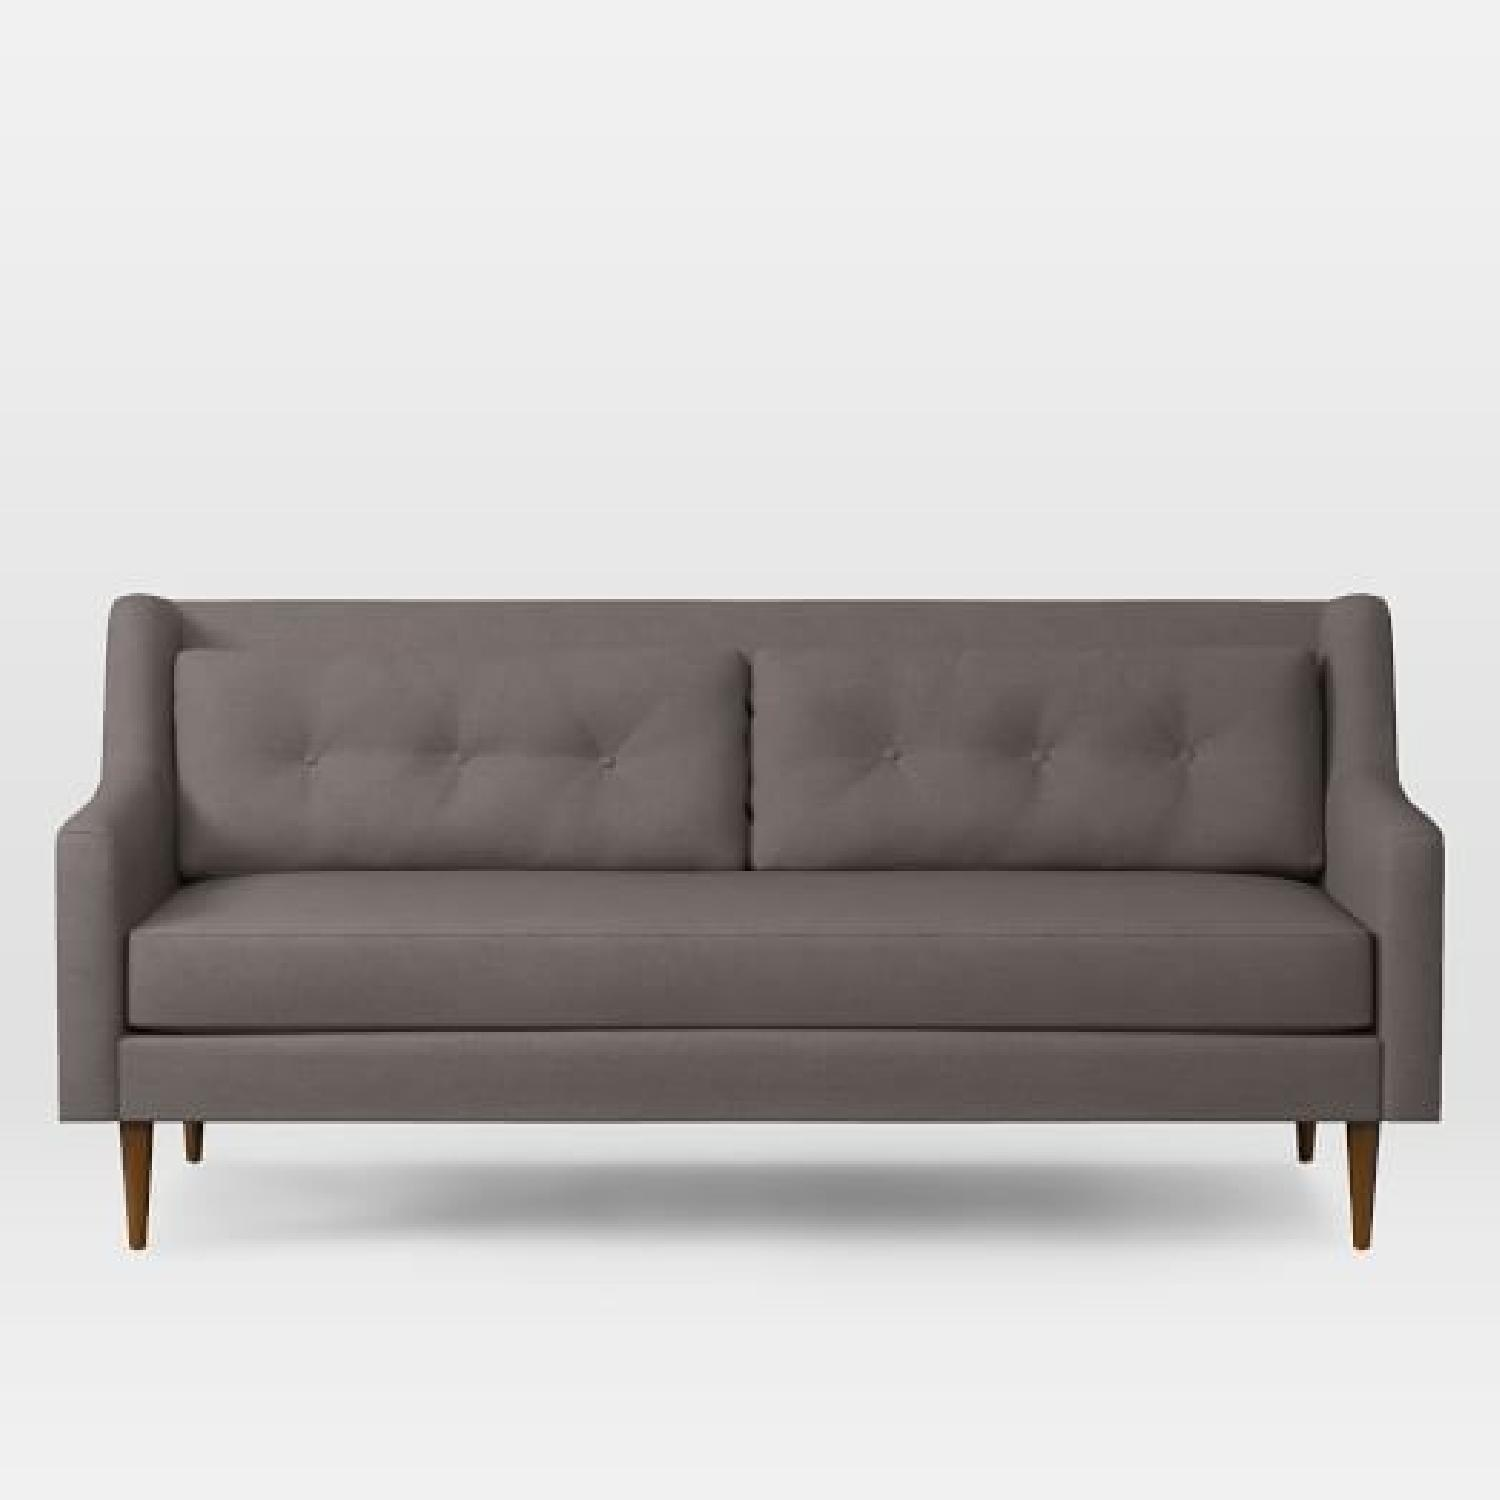 West Elm Crosby Mid Century Sofa ...